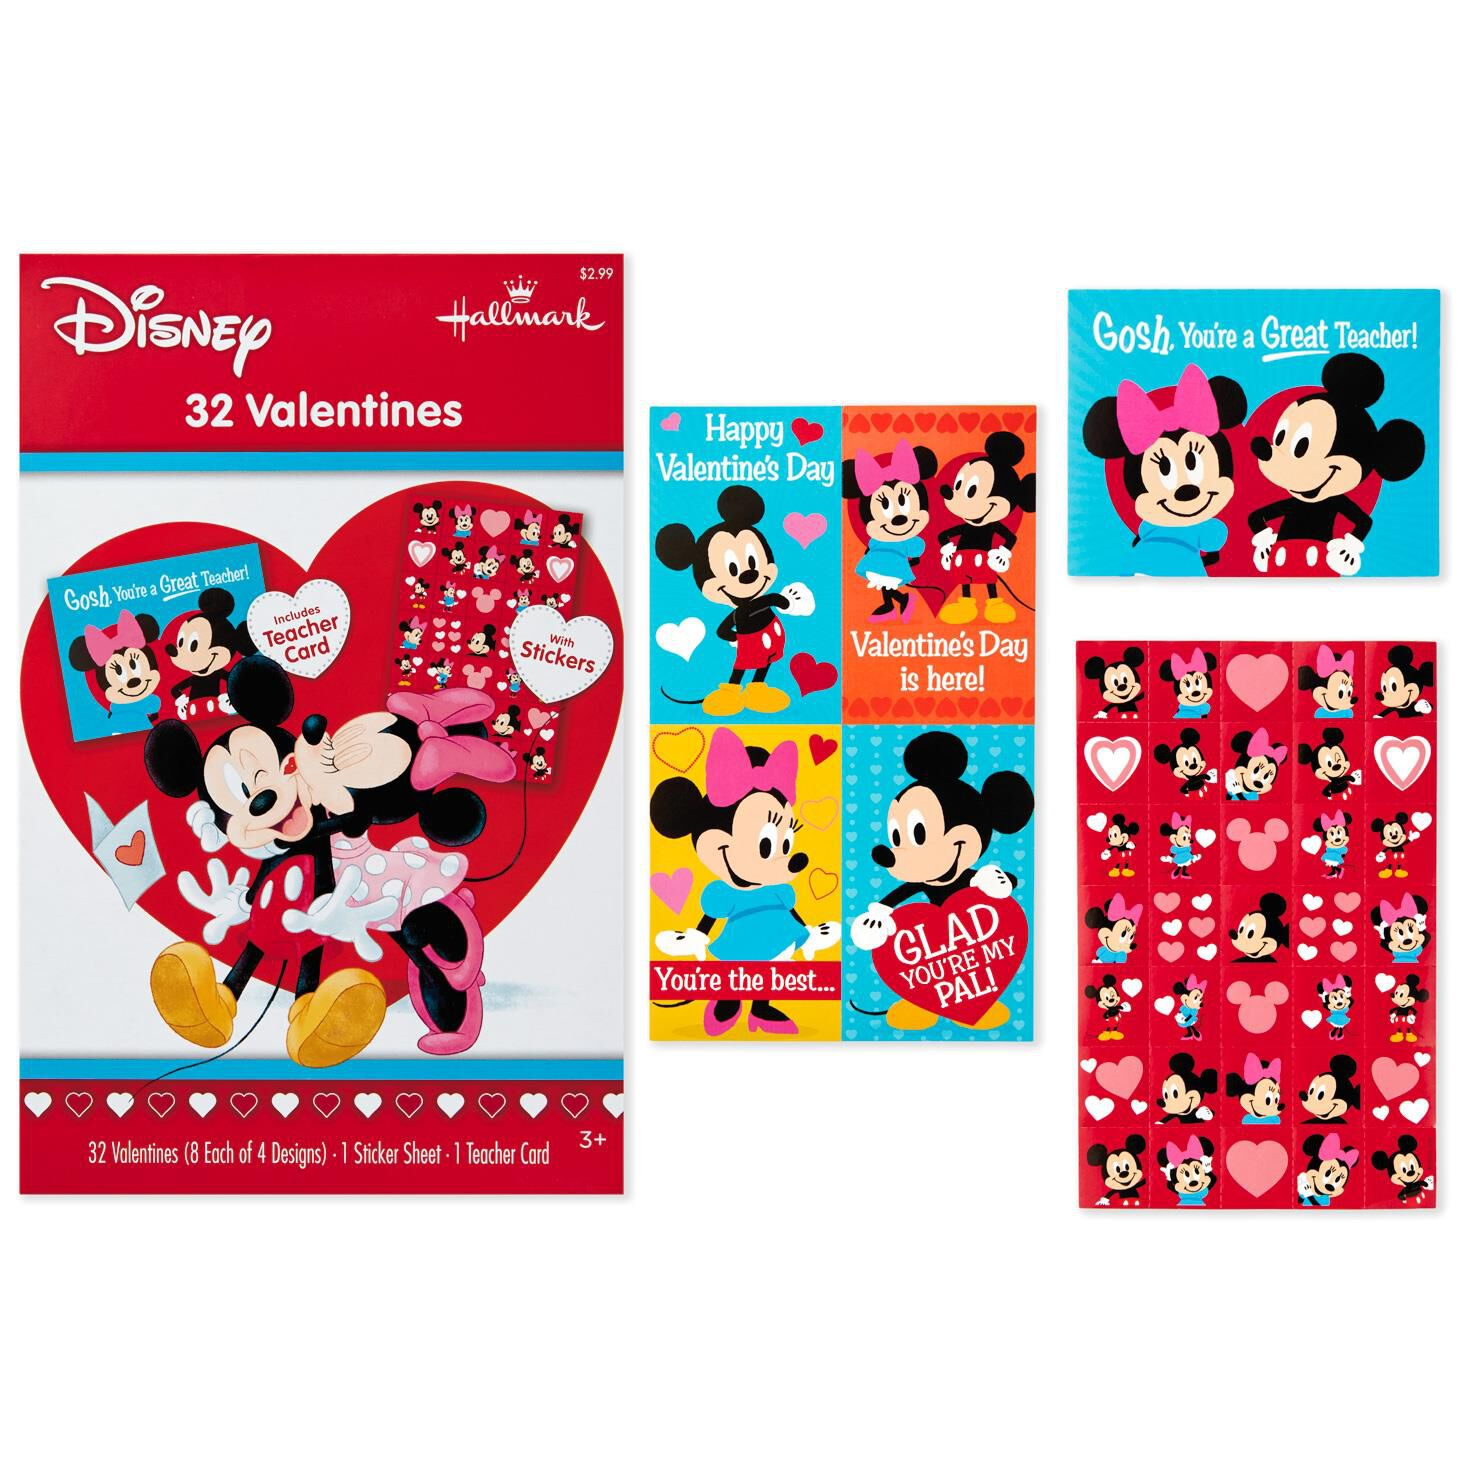 Free Editable Princess Invitations Birthday Invitation Templates Printable Party Disney Mickey And Minnie Kids Valentines With Stickers Pack Of 32